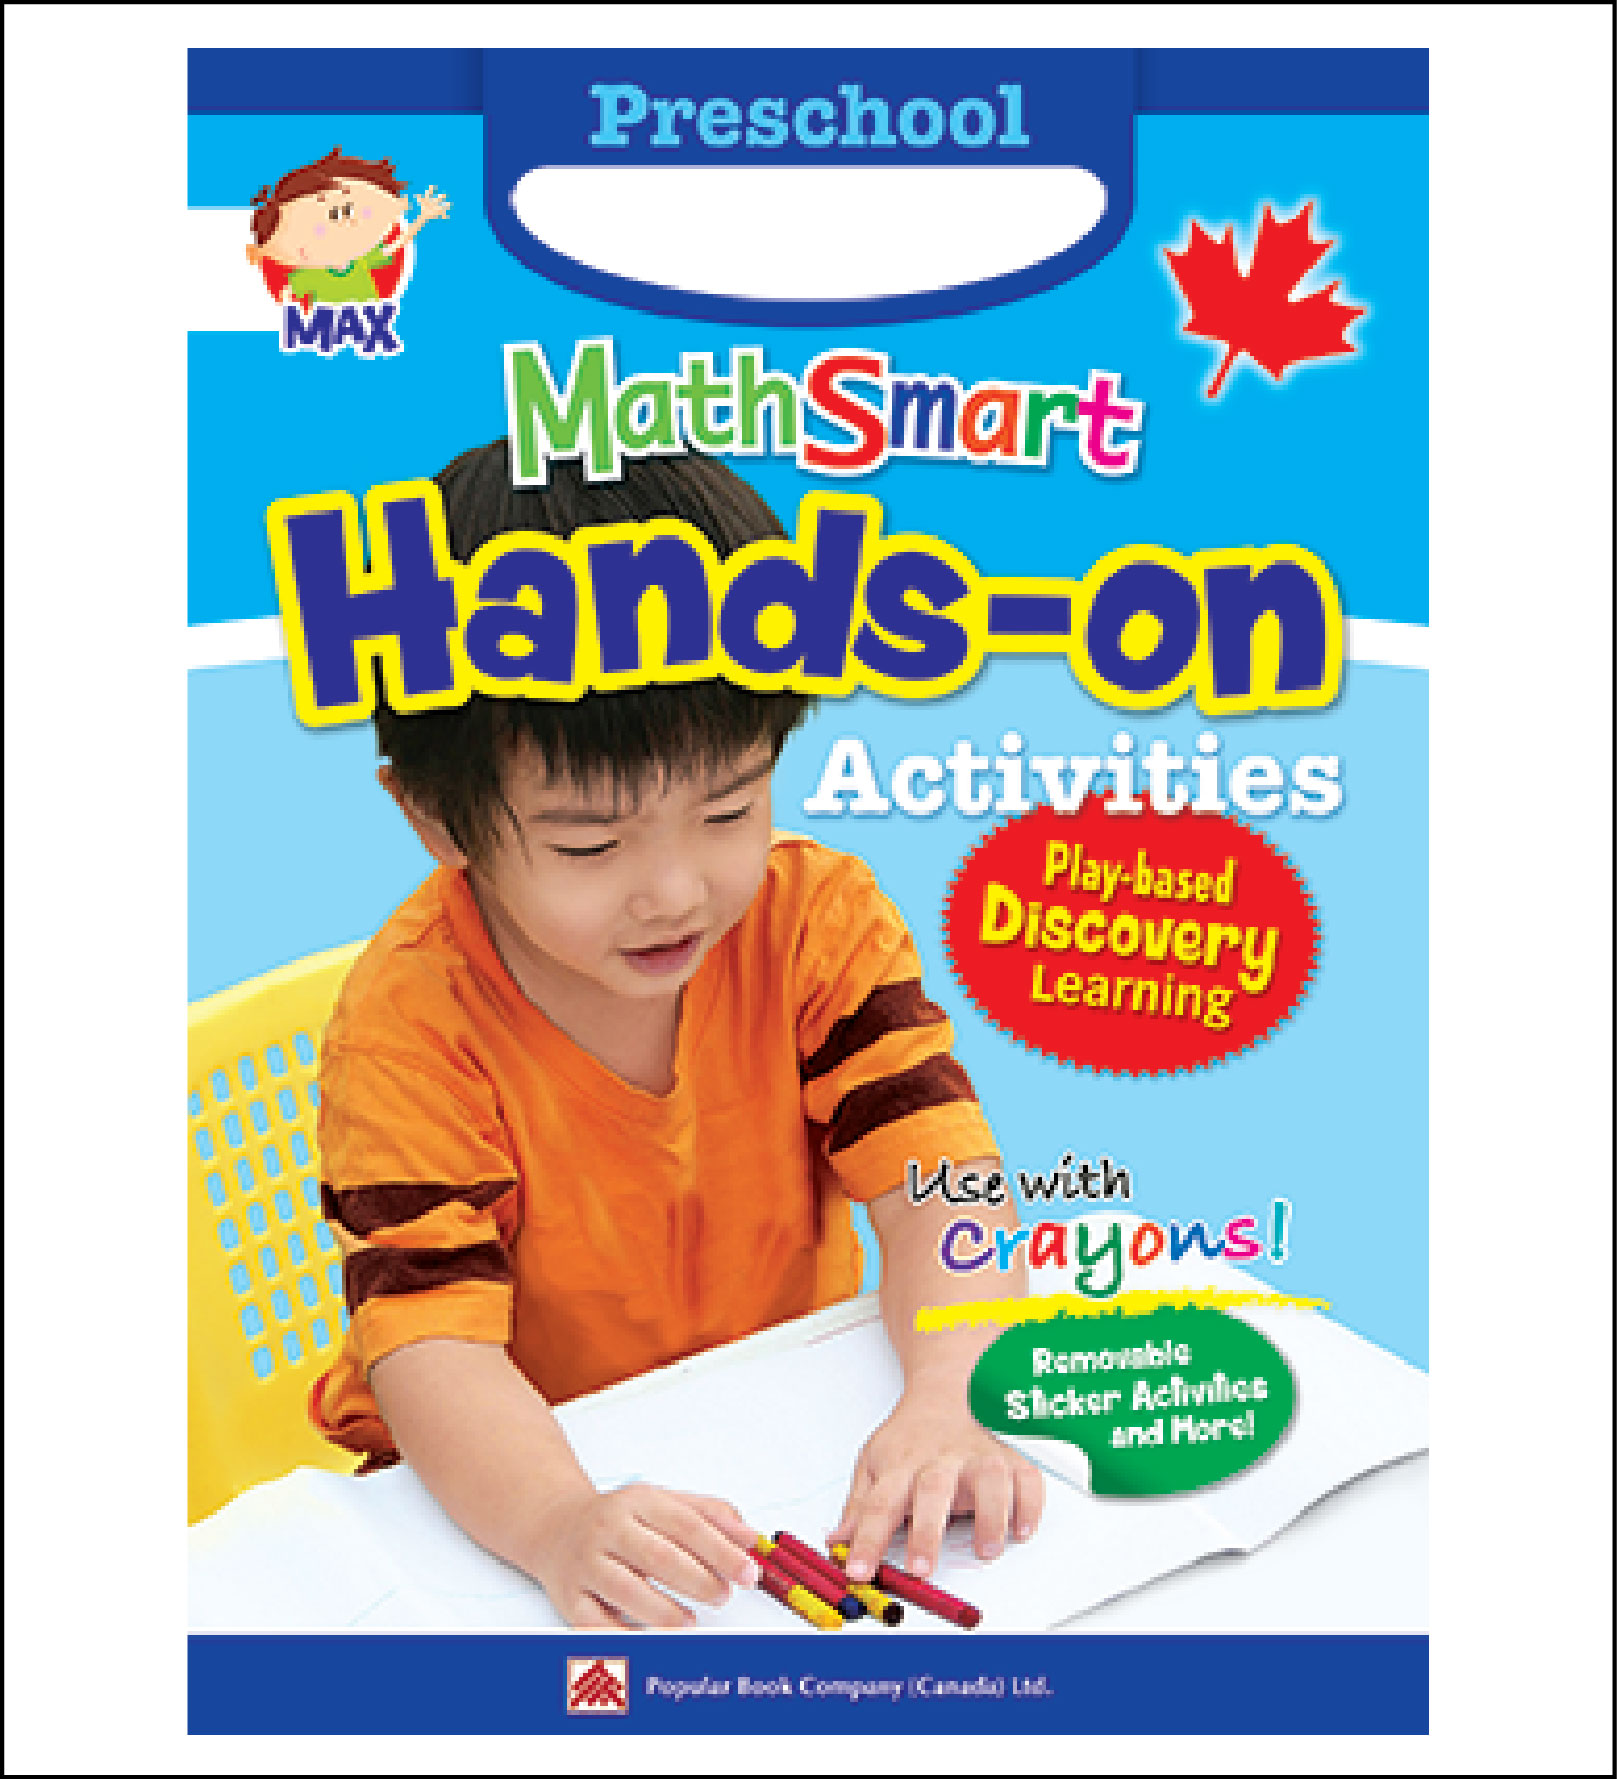 Math activty book for kids Preschool MathSmart Hands-on Activities